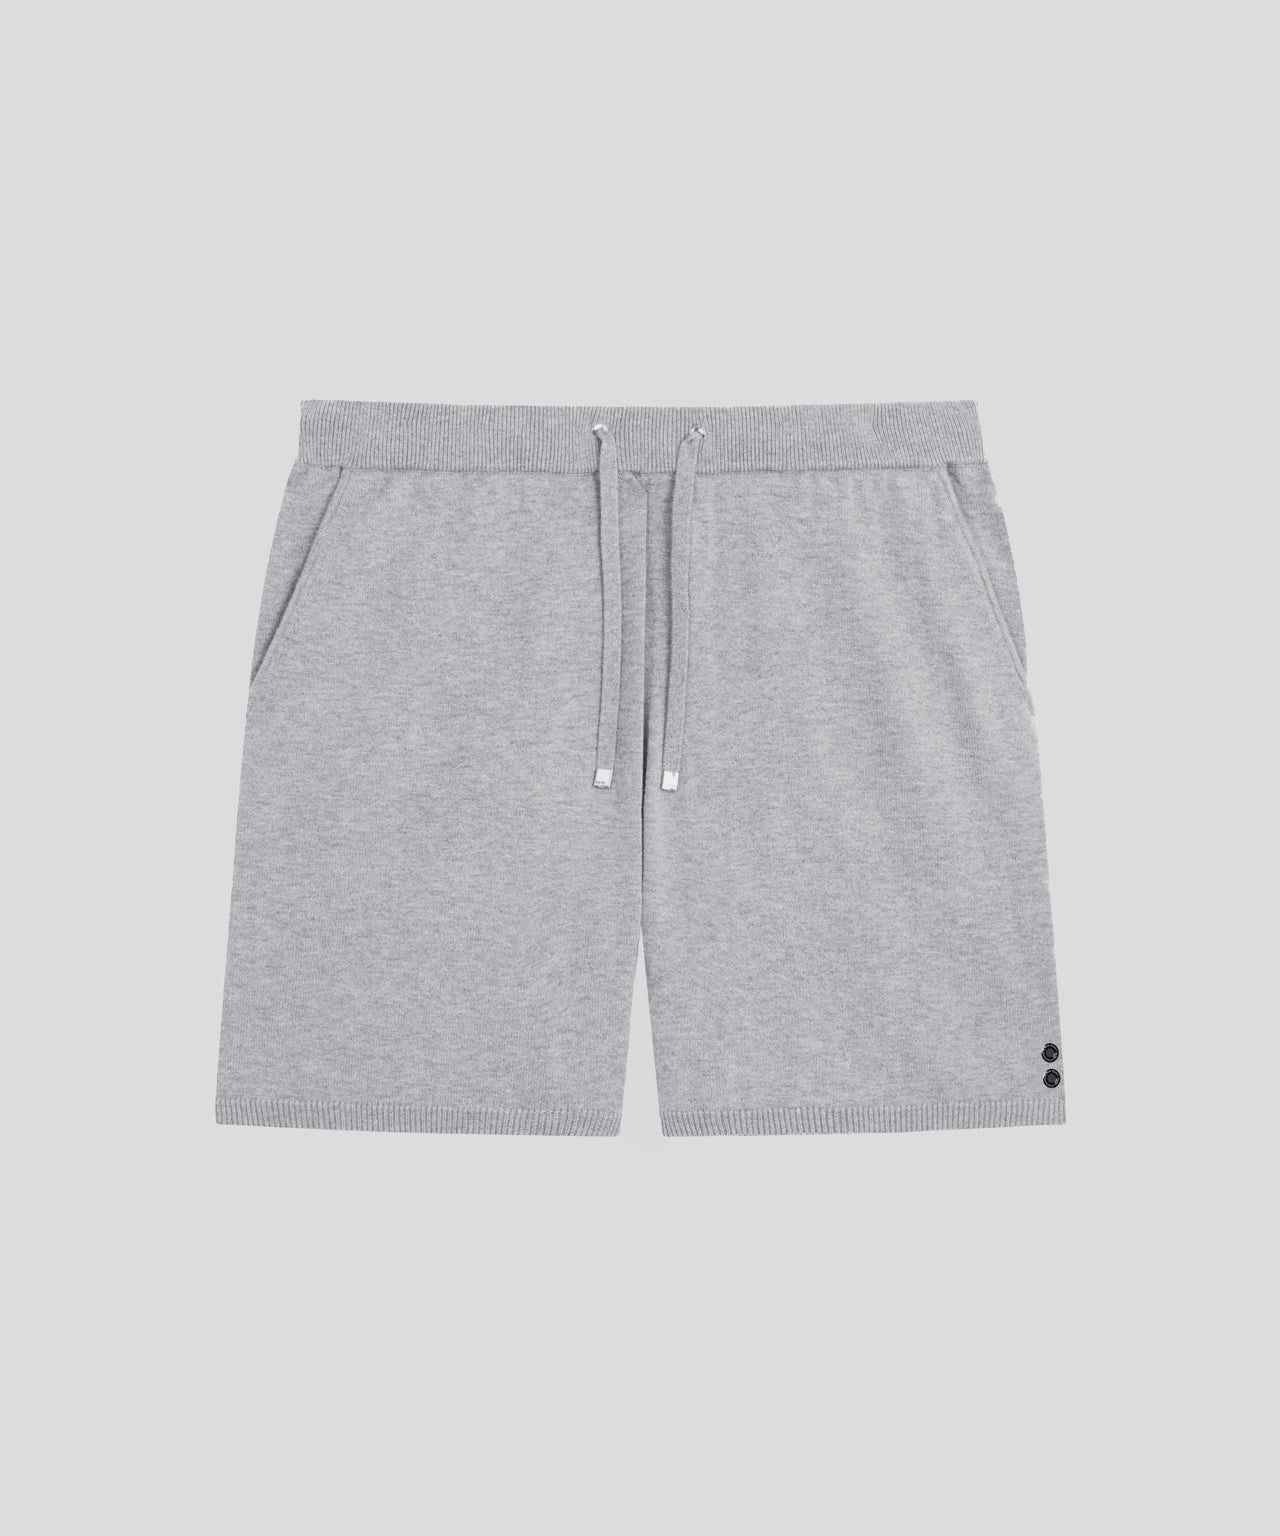 Cotton Cashmere Shorts - grey melange